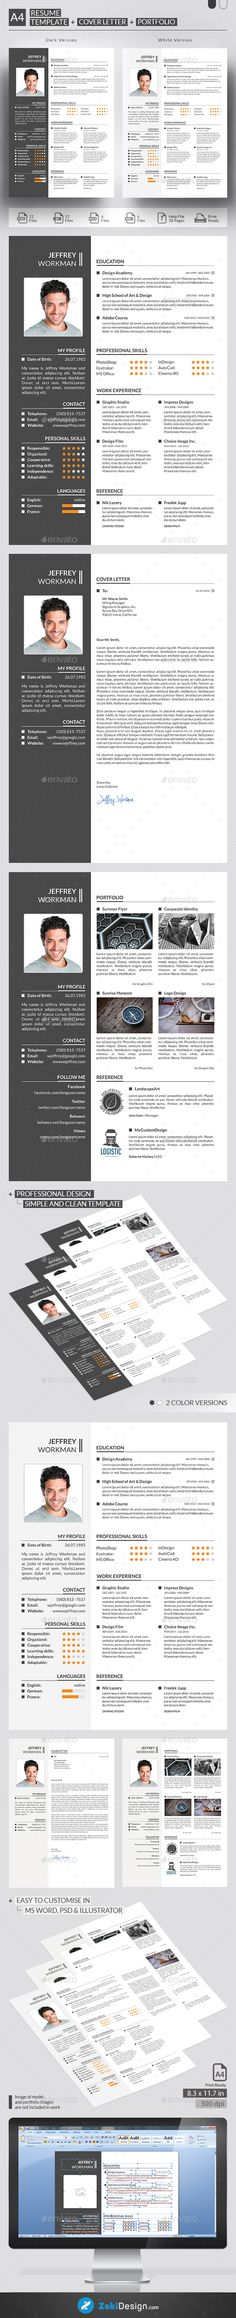 Editável Formato Cv De Download | Cv Format, Infographic Resume